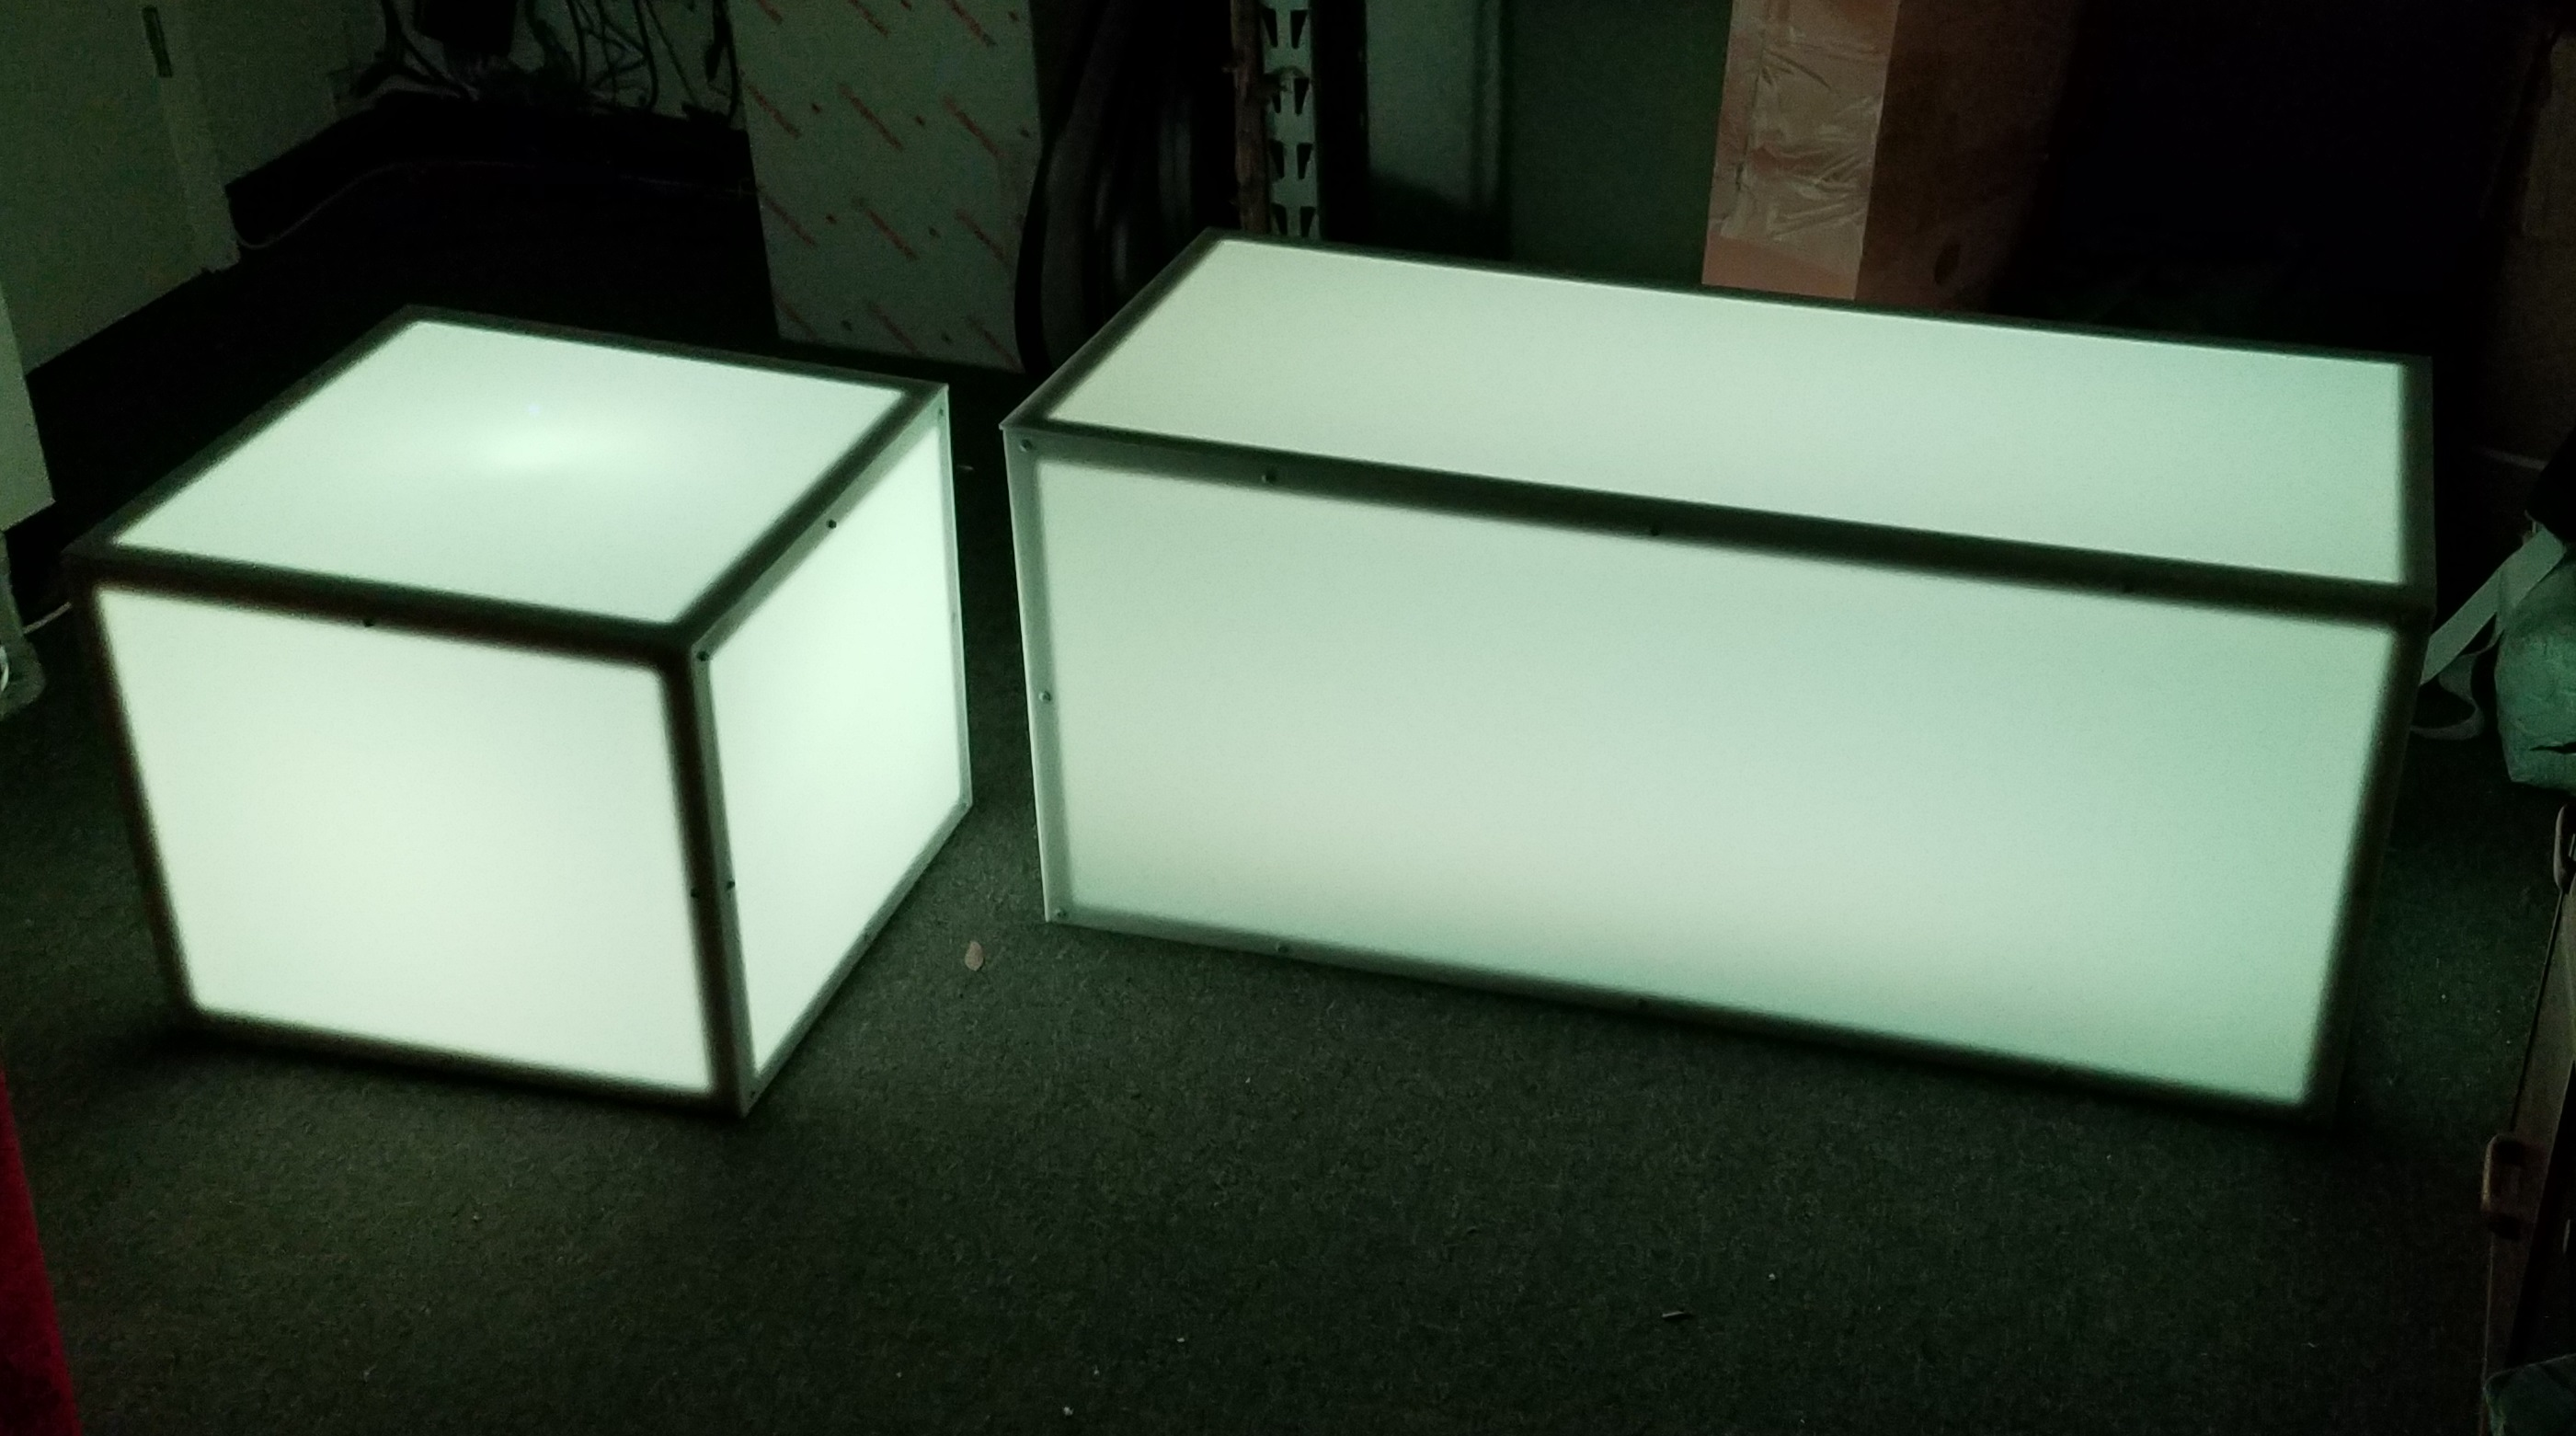 WHITE LED Light Up Coffee Table. Remote Control For LED